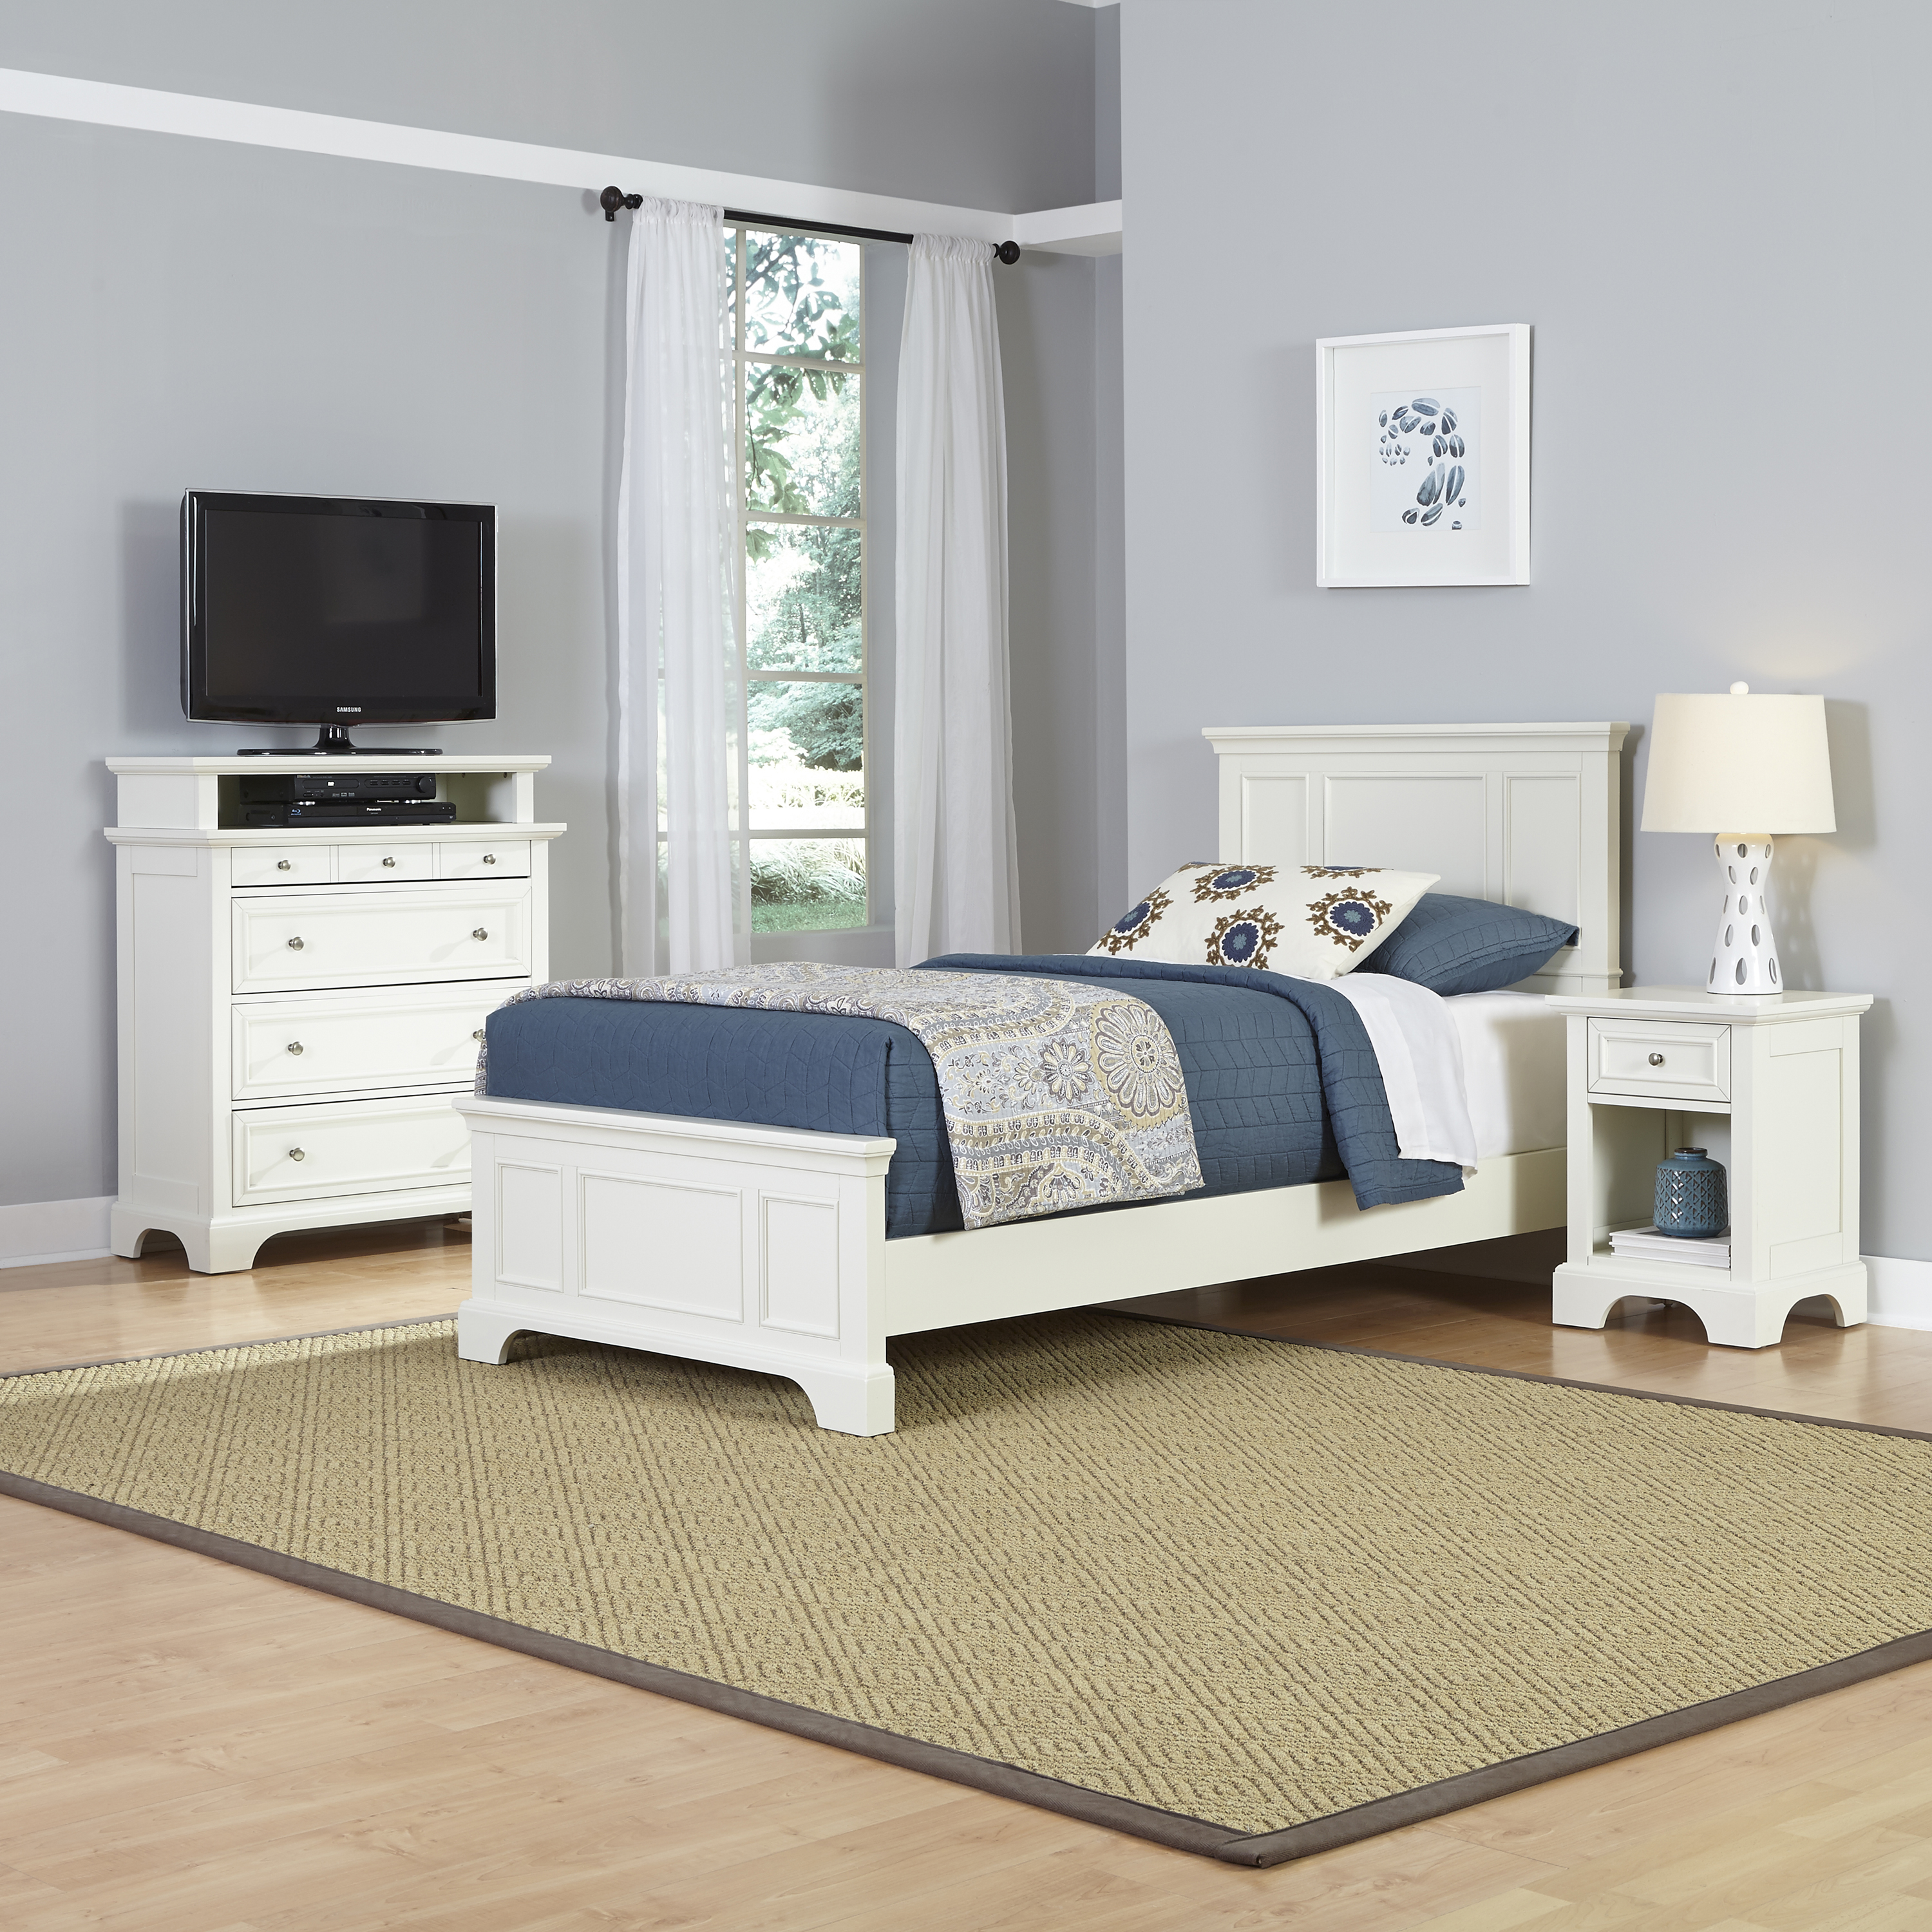 Home Styles Naples Twin Bed, Night Stand, and Media Chest